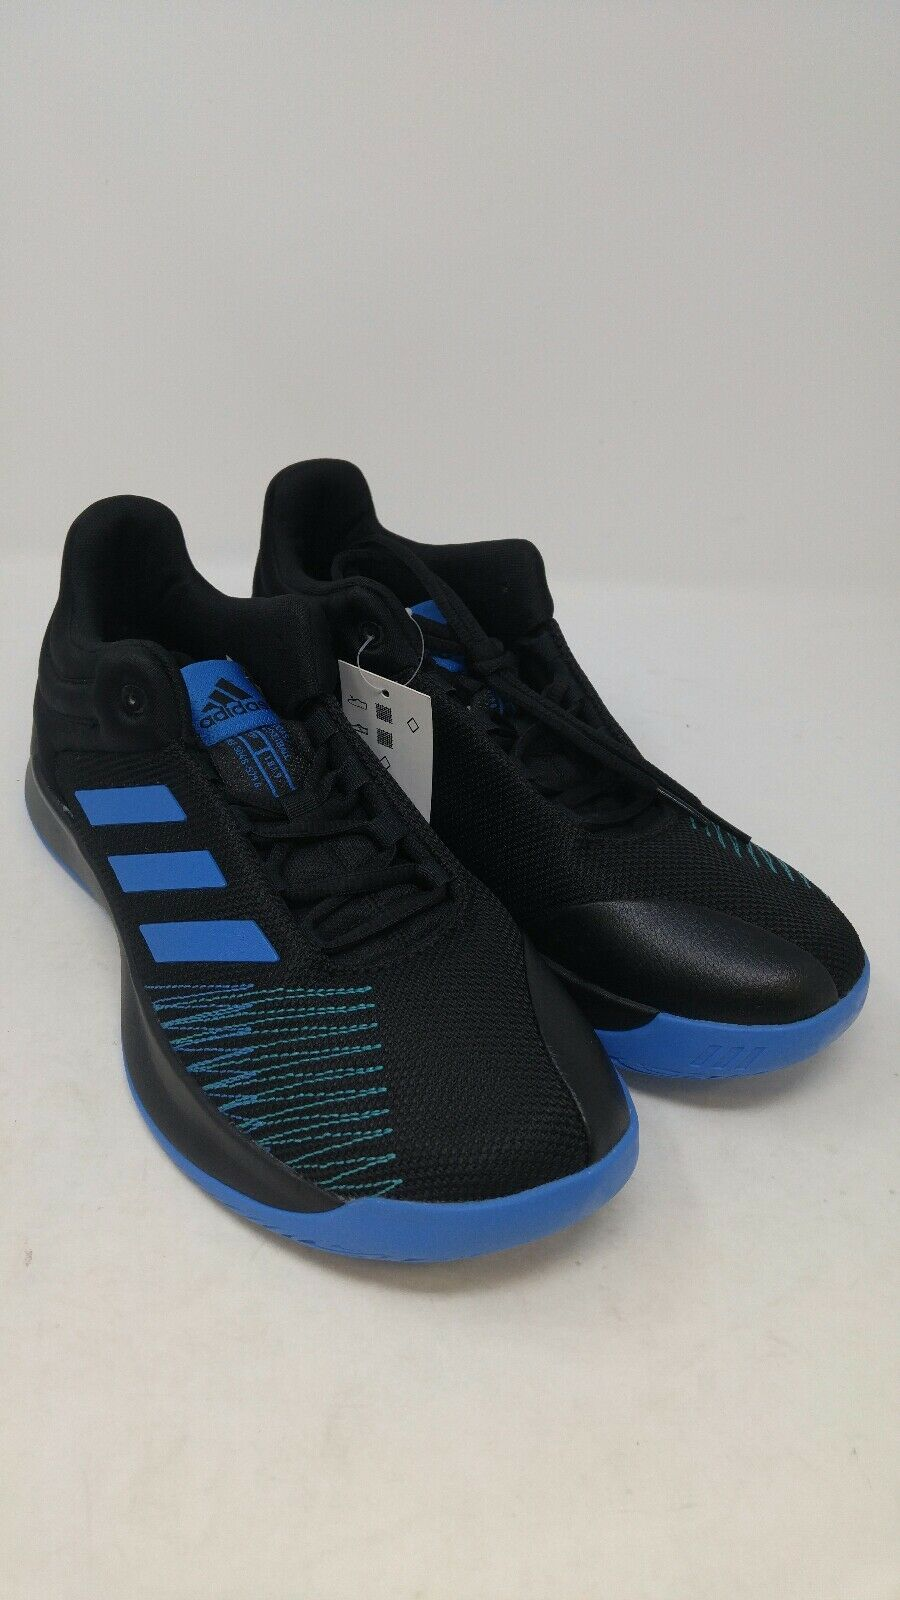 Adidas Mens Pro Spark Low 2018 Basketball shoes Black Bright bluee Size 10